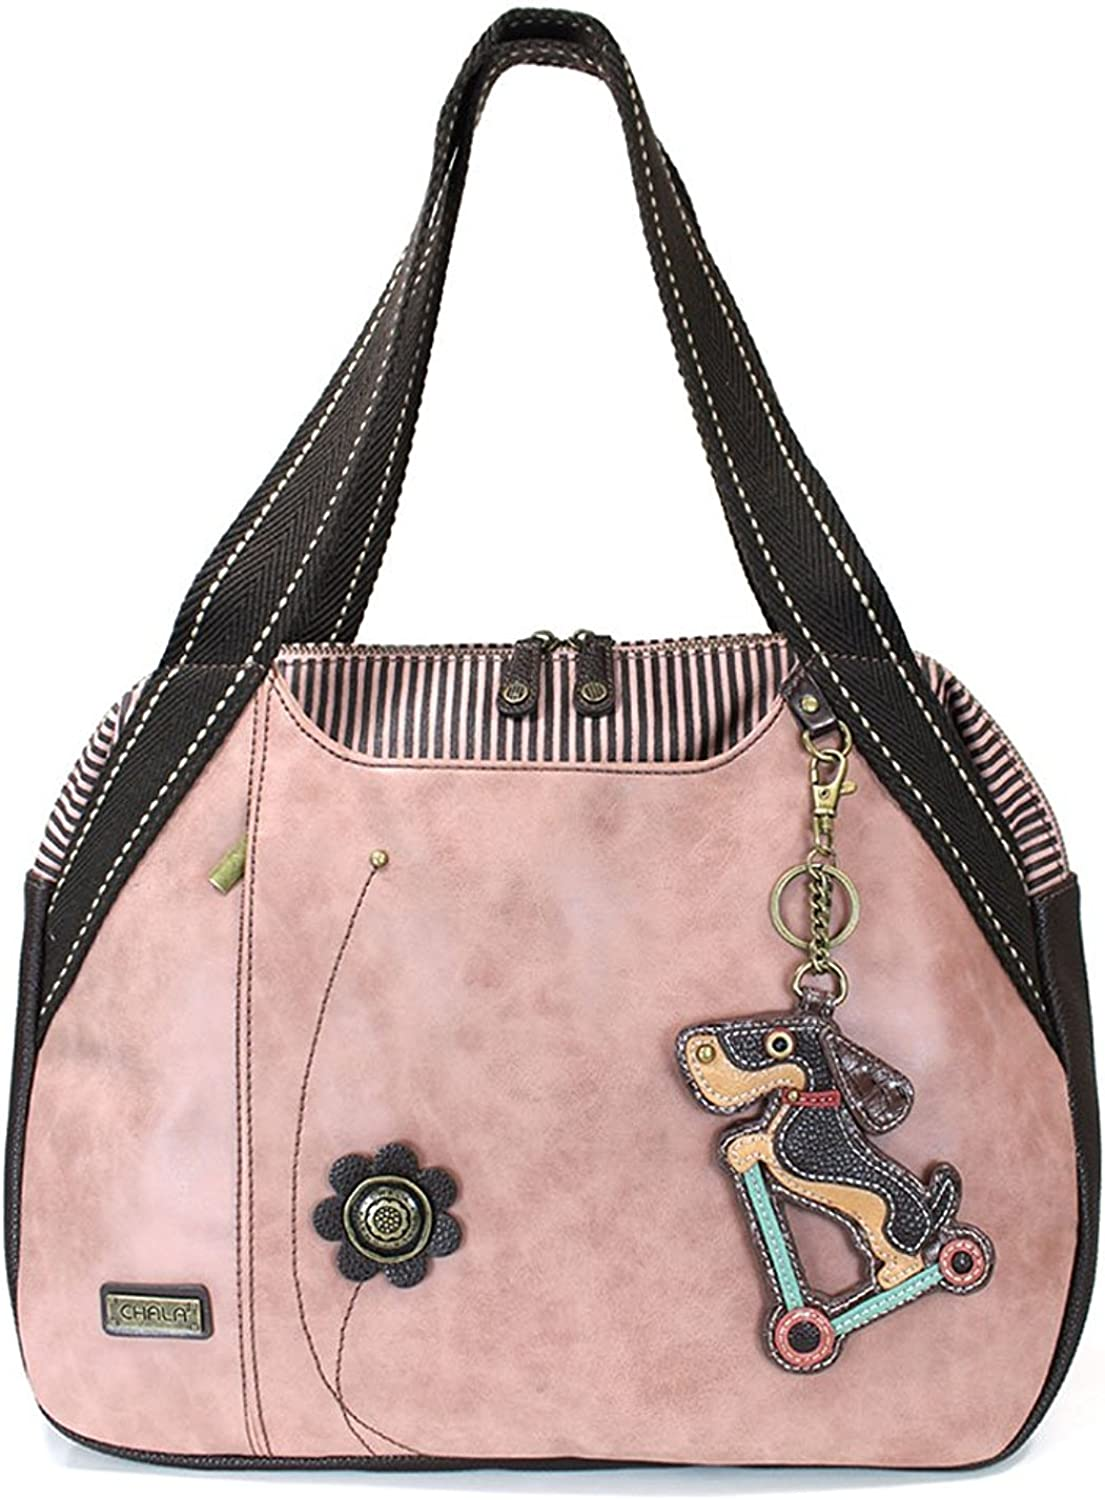 Chala Elephant Bowling Bag, Dusty pink